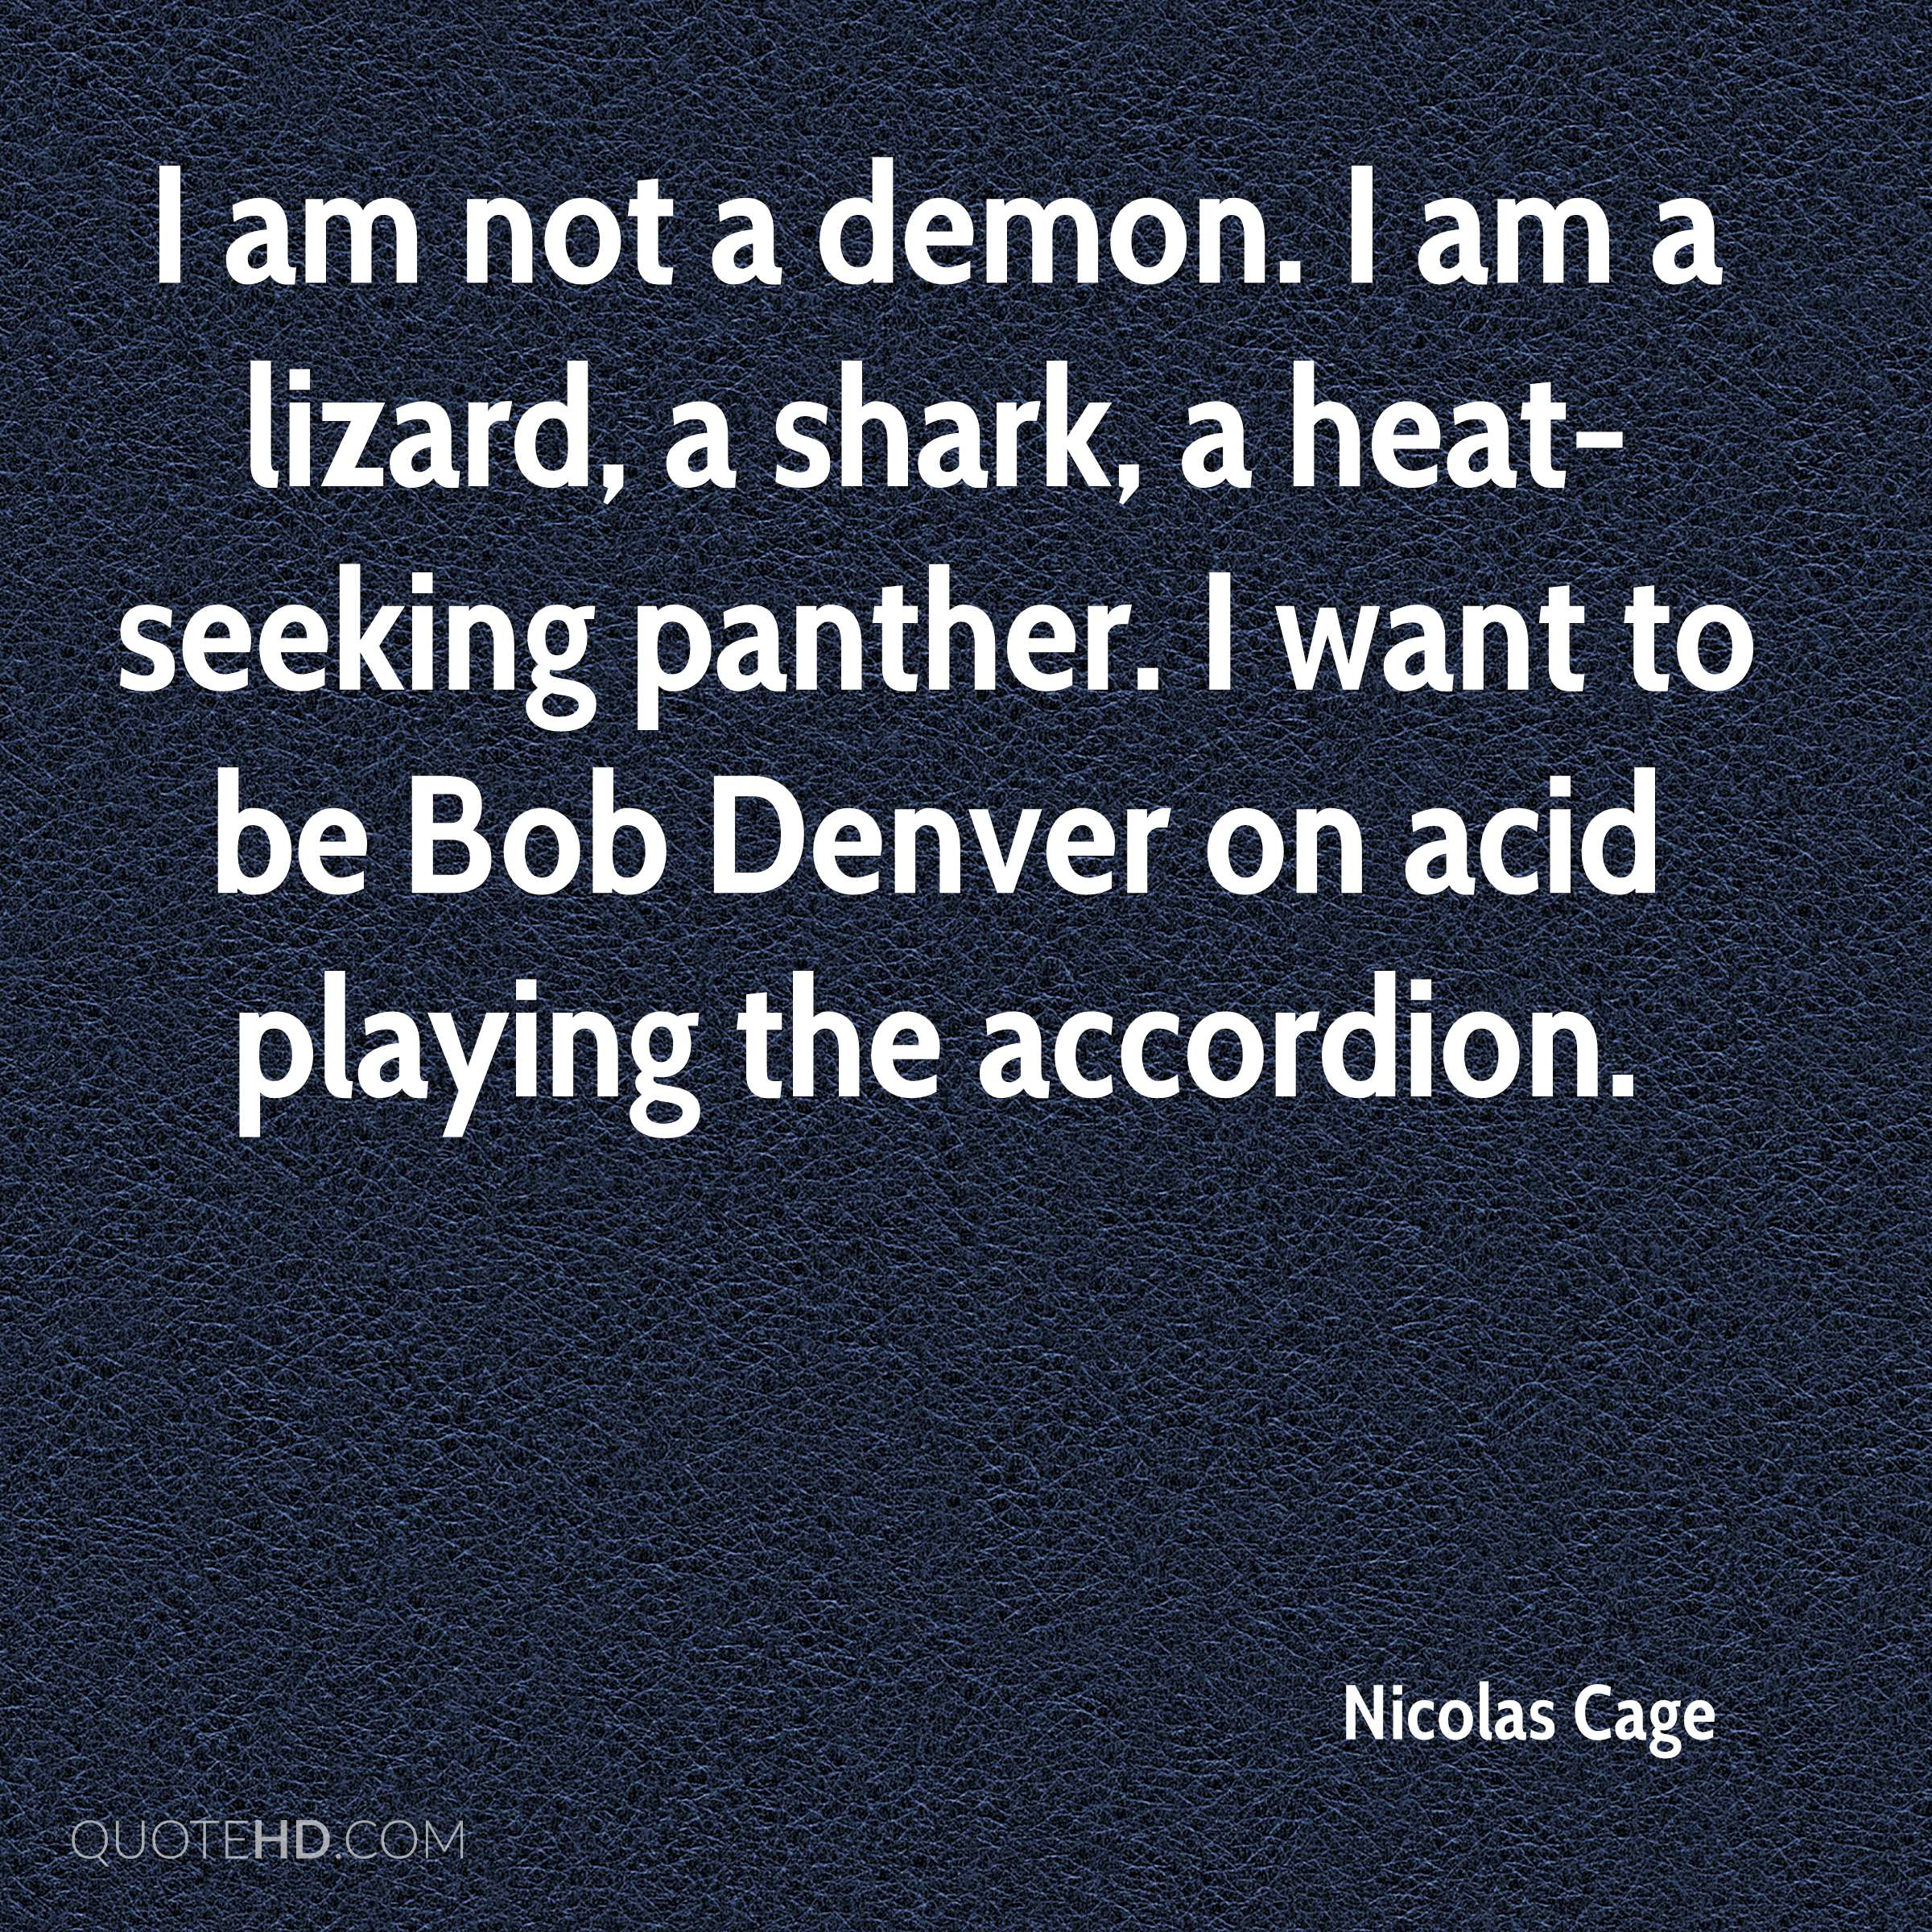 I am not a demon. I am a lizard, a shark, a heat-seeking panther. I want to be Bob Denver on acid playing the accordion.